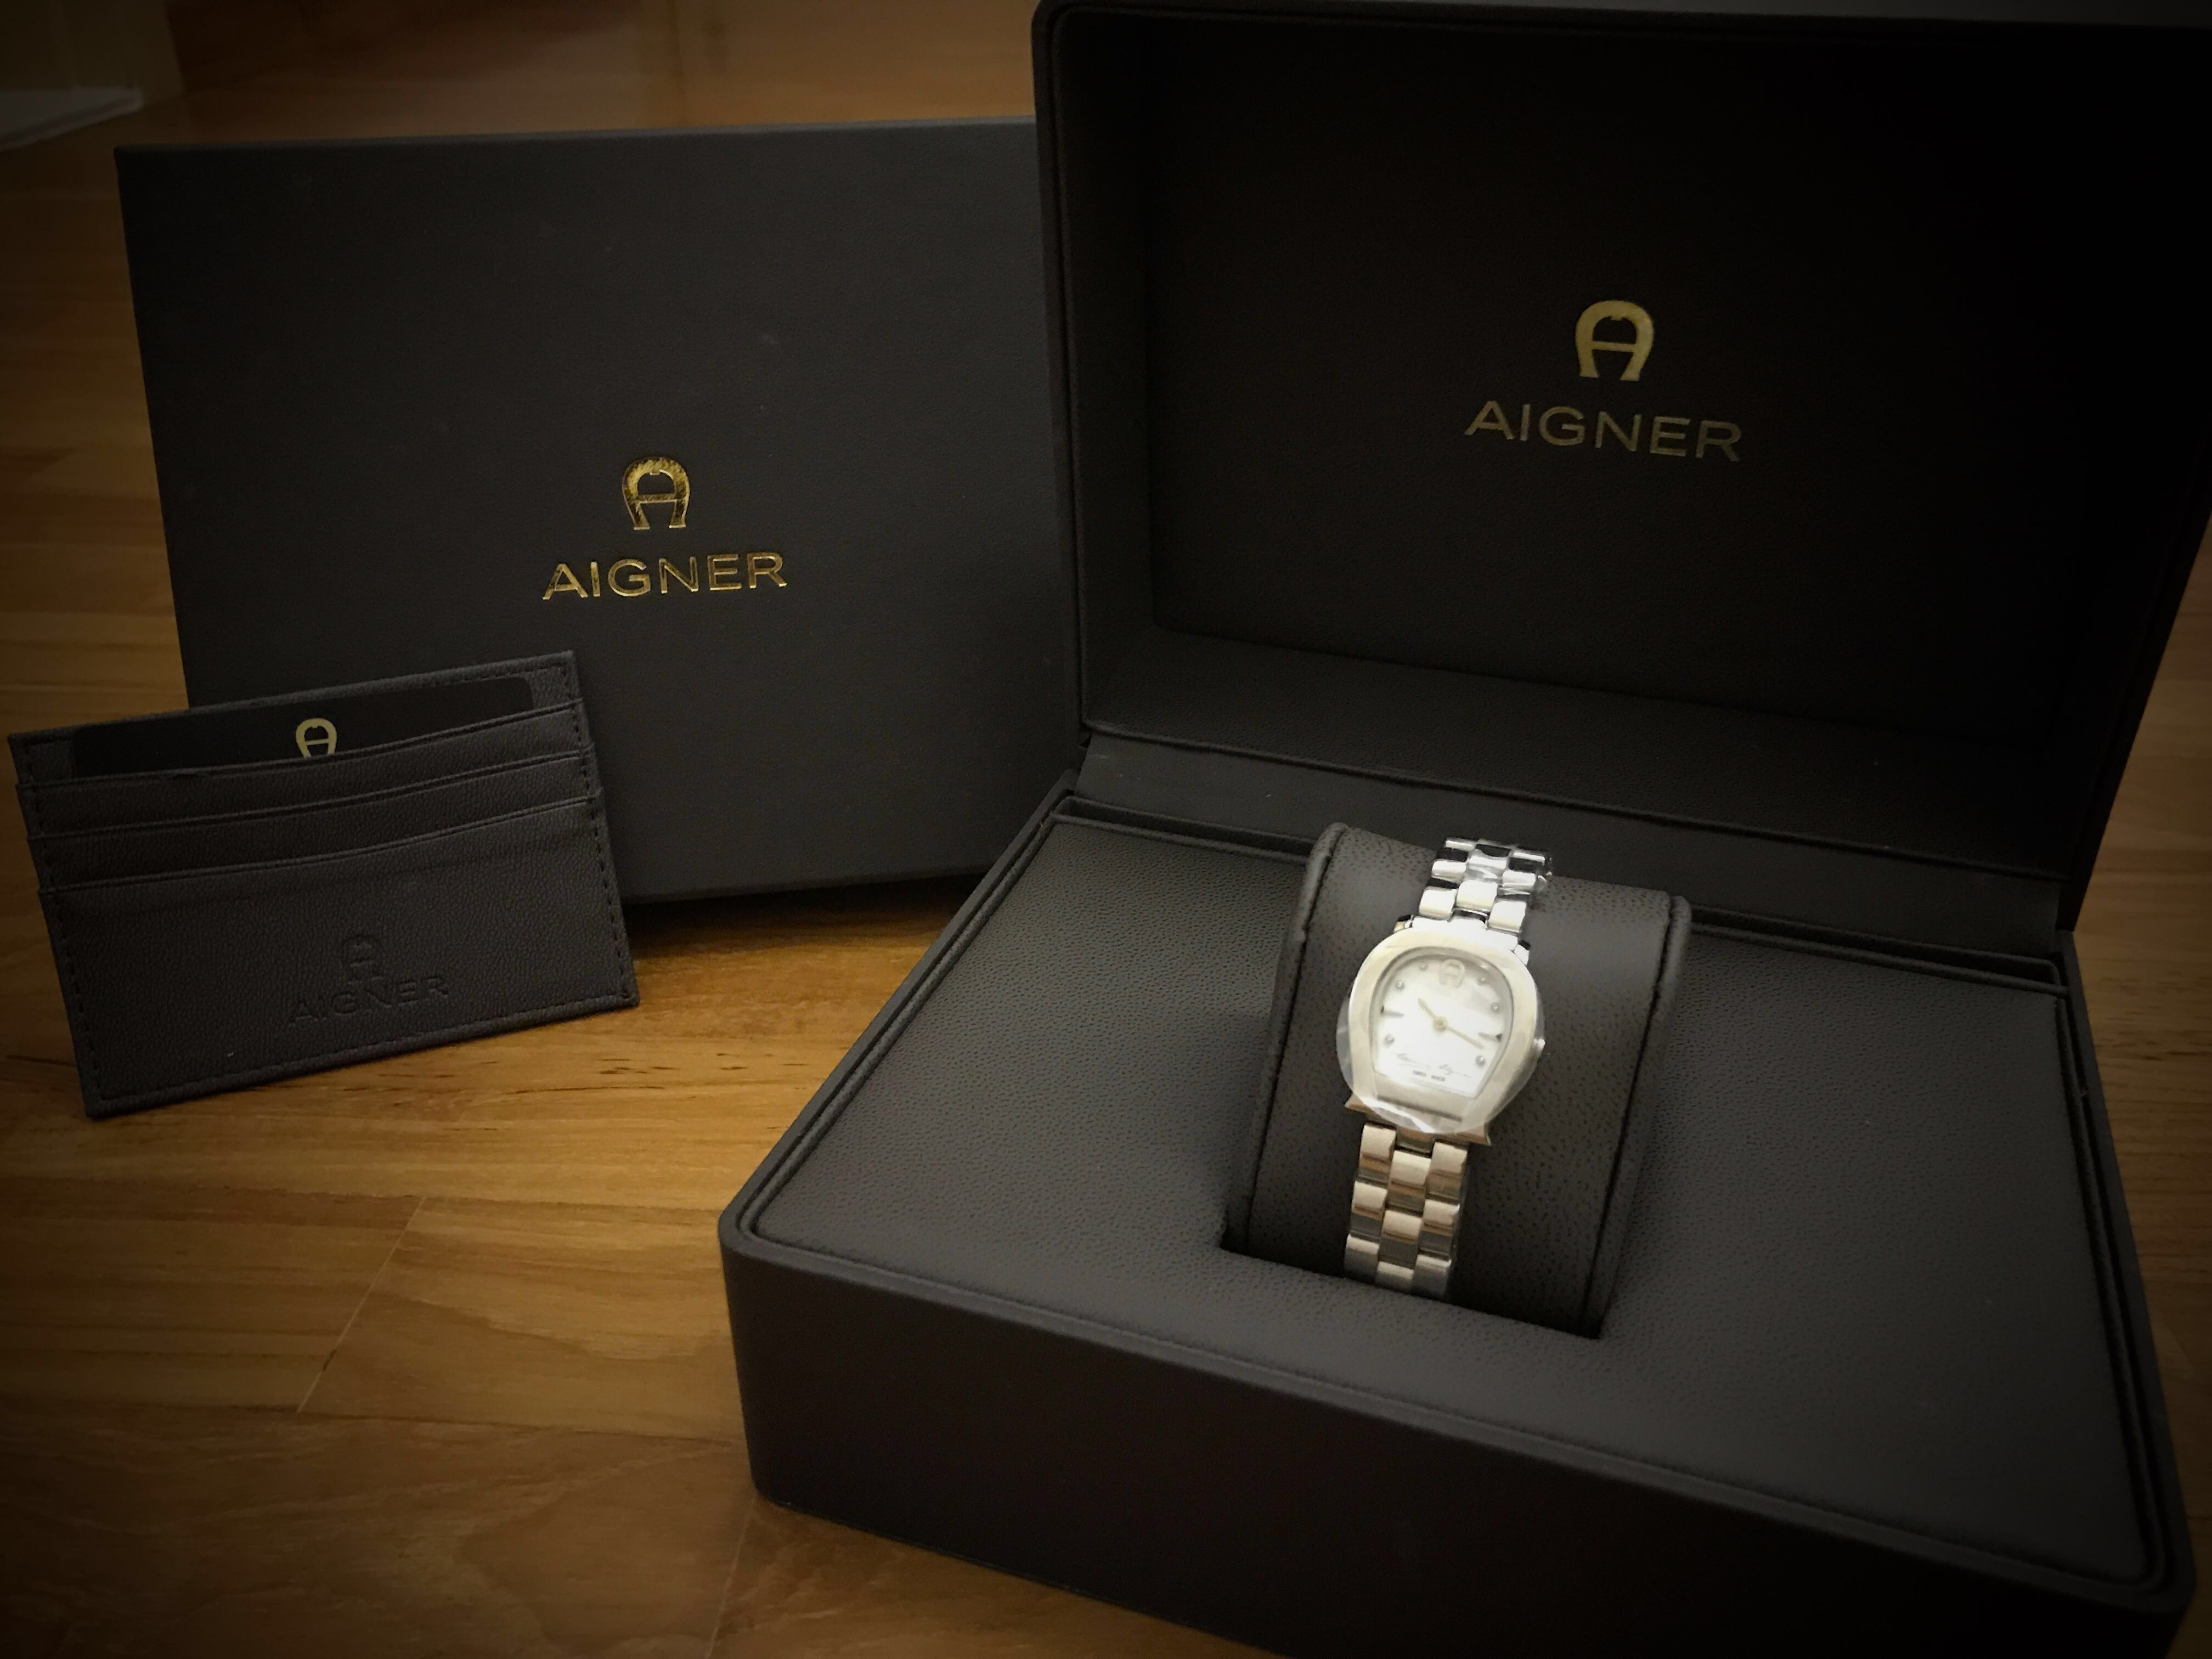 Authentic Aigner Ladies Watch Set W Cardholder Luxury Watches On Women Carousell